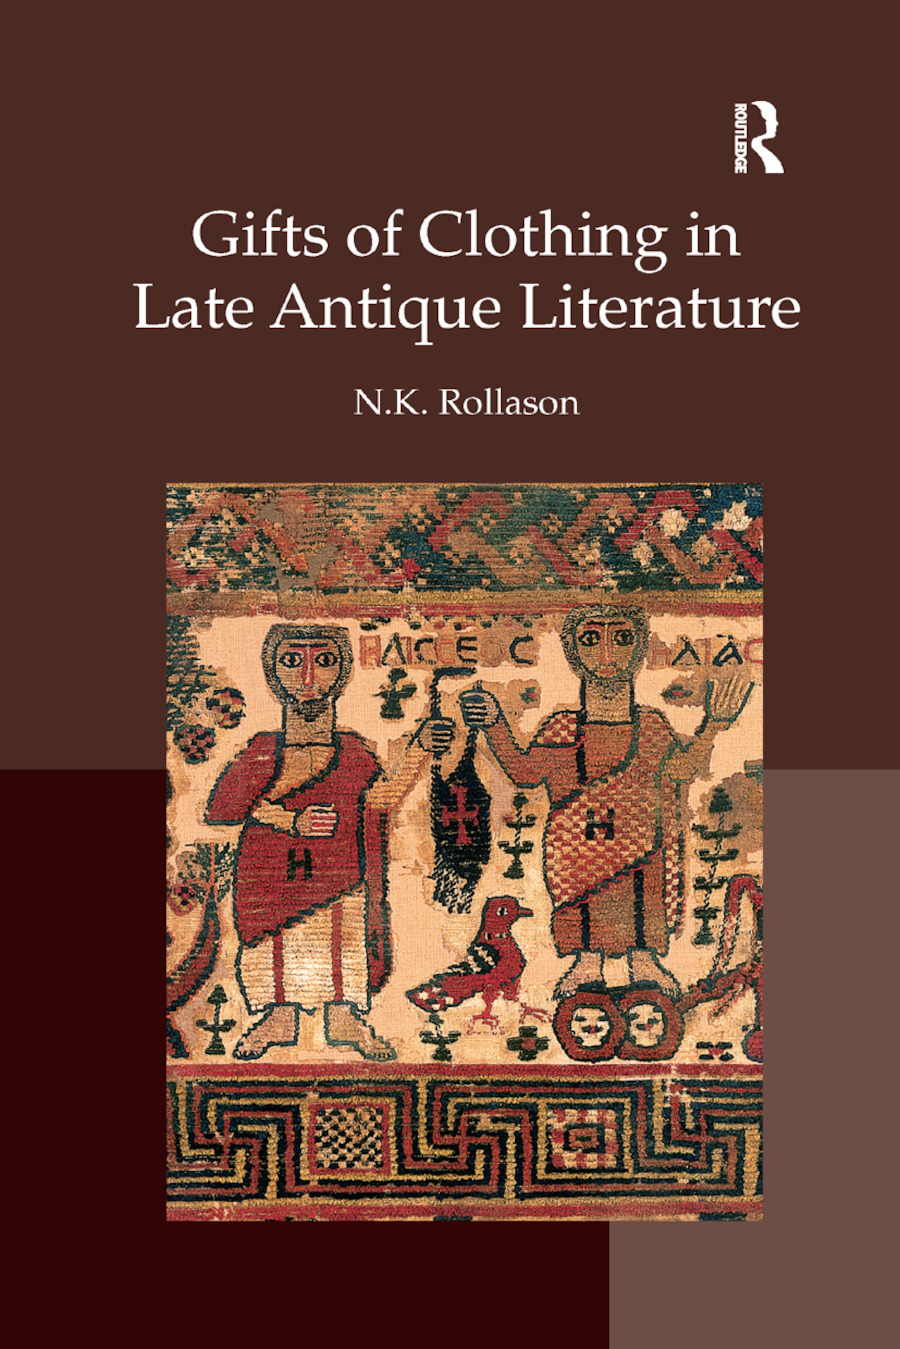 Gifts of Clothing in Late Antique Literature